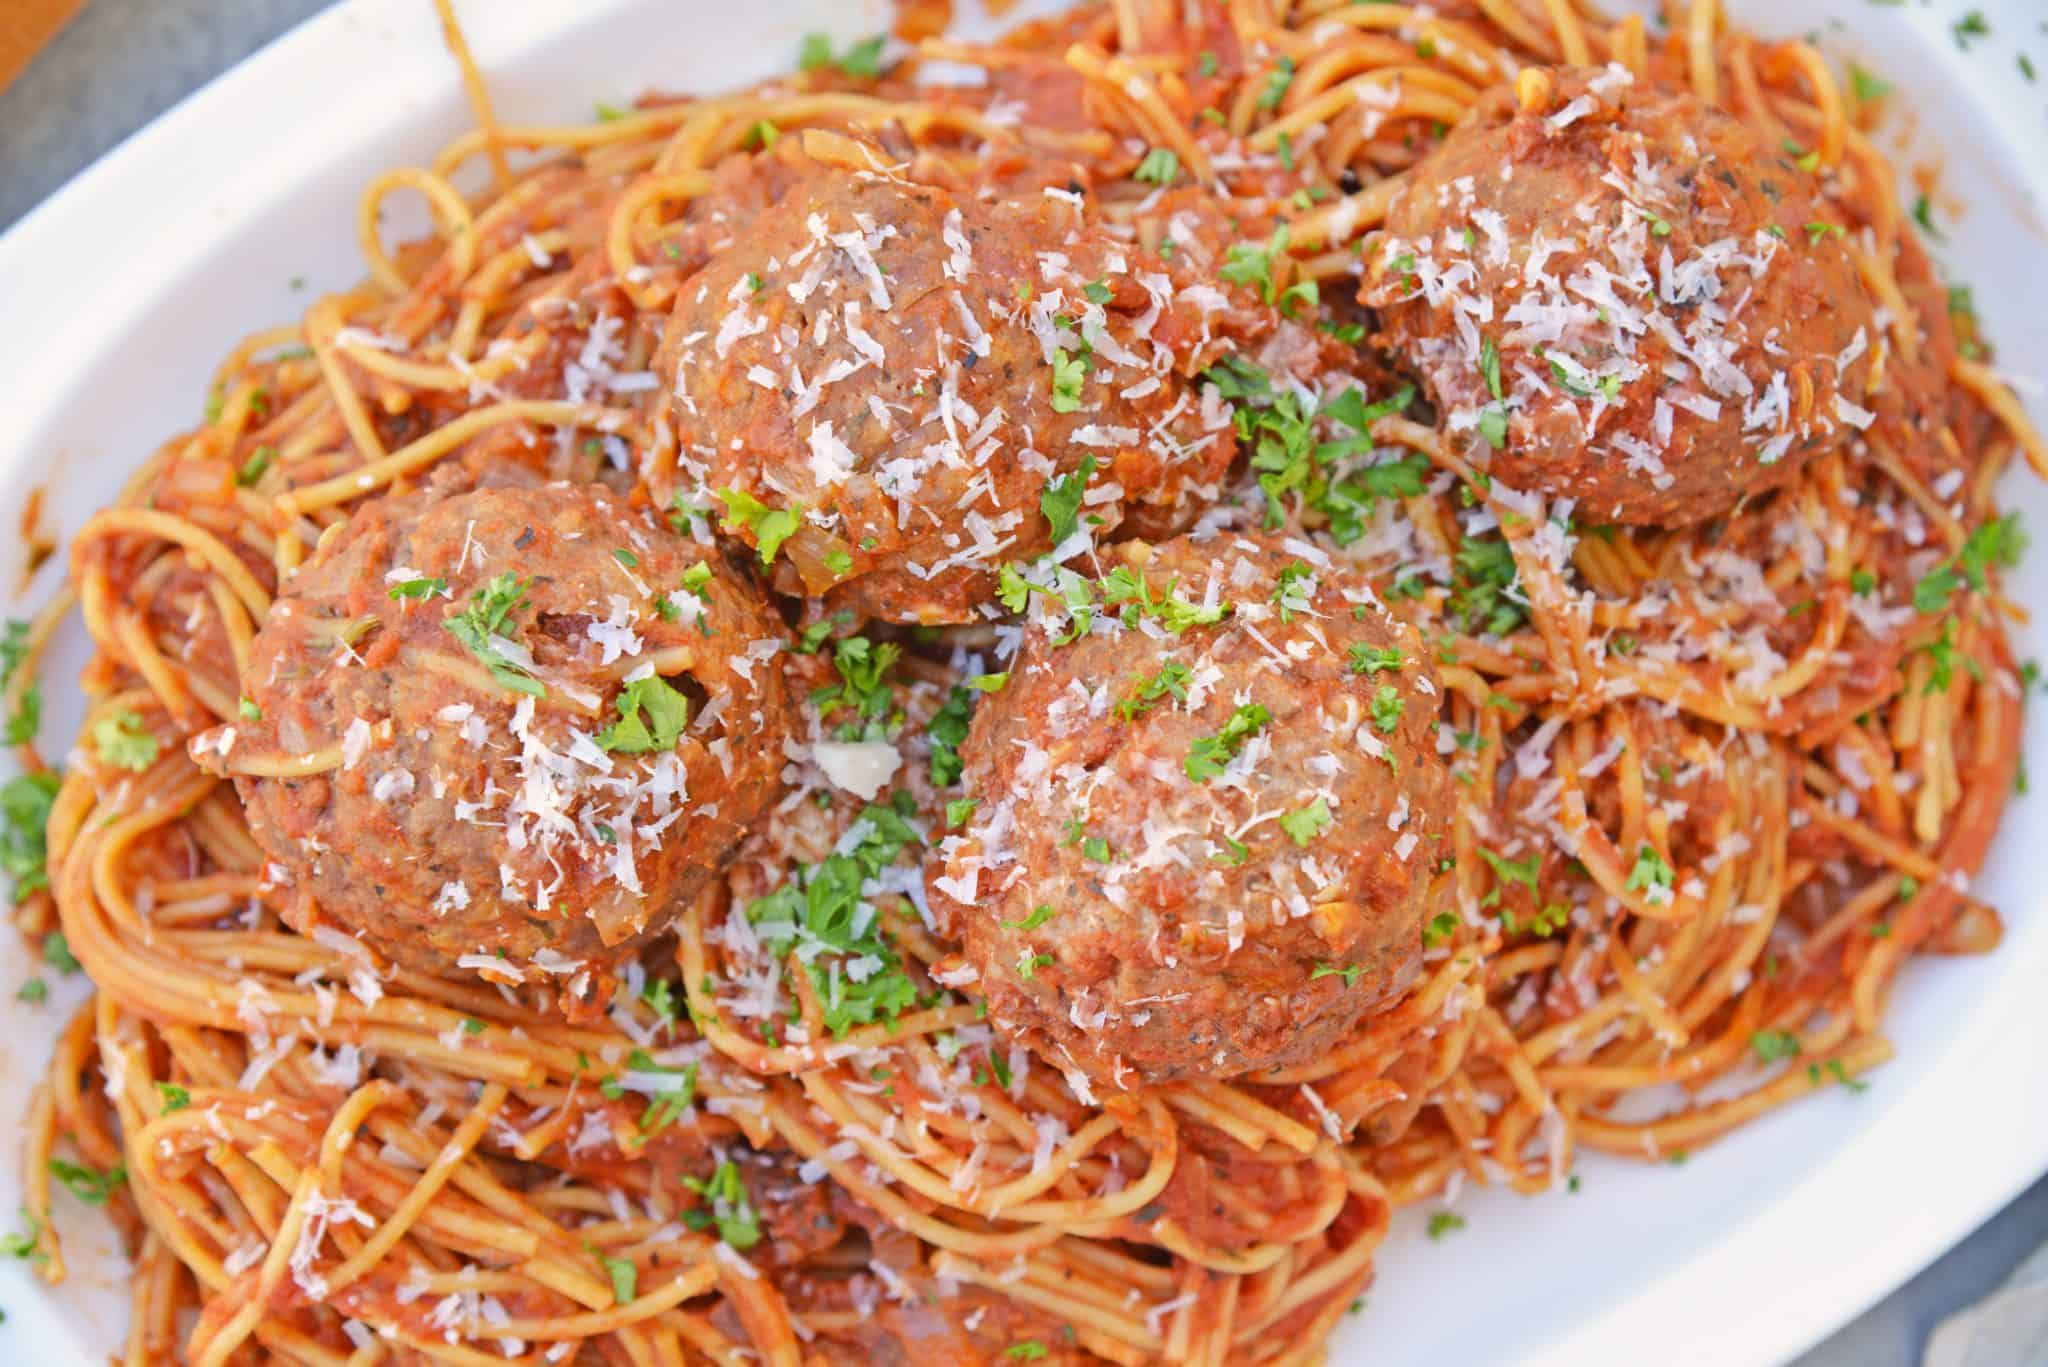 Spaghetti and meatballs in a white bowl - quick and easy meals